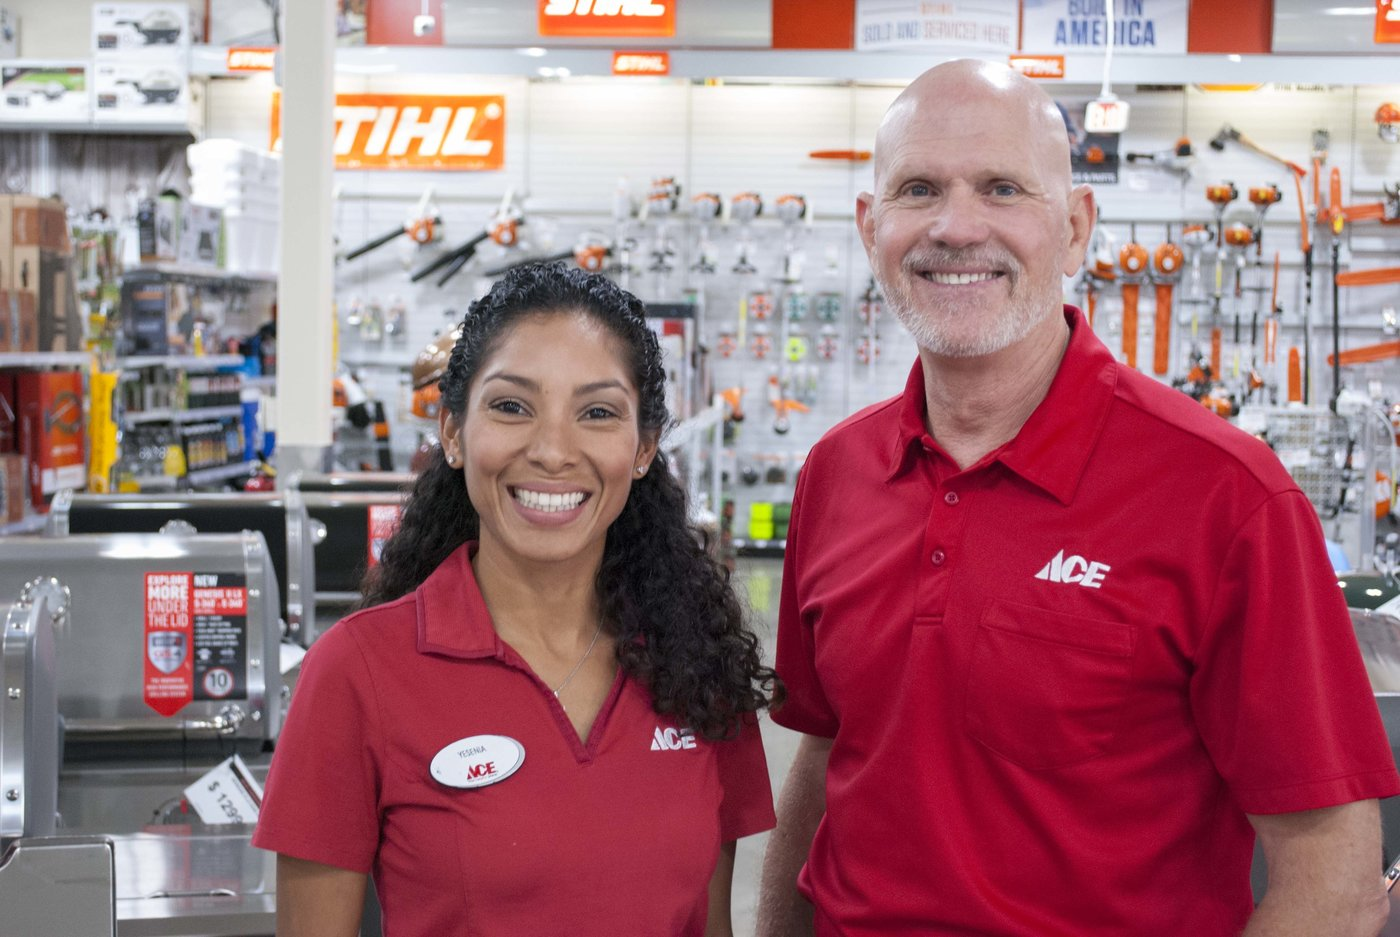 Bill and Yesenia Pastermack, who operate two Ace Hardware stores in Titusville, Fla., say they have a lot of key items on back order.